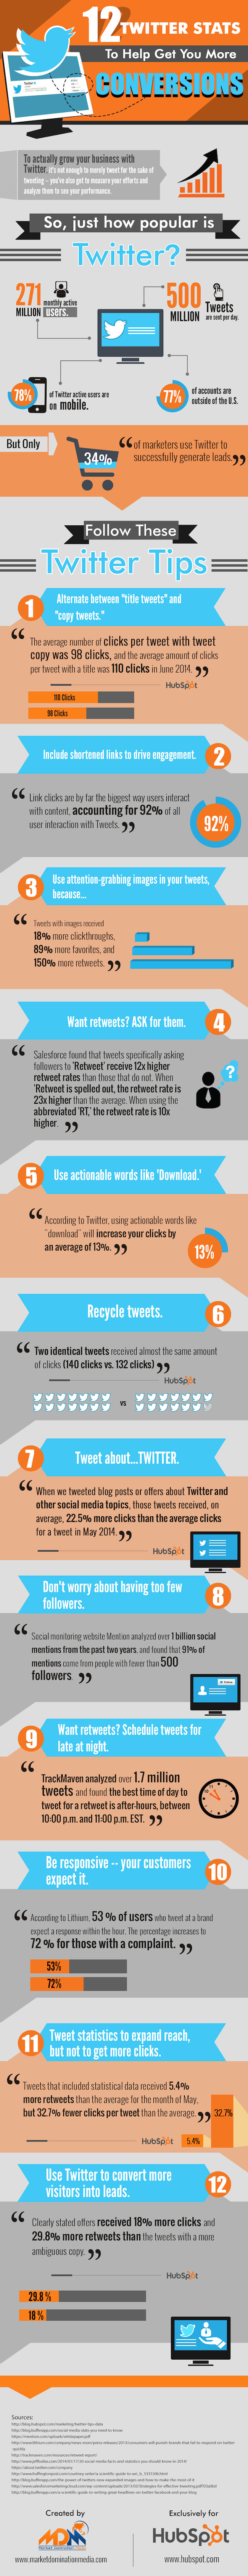 30 fascinating Twitter Marketing Stats For 2015 - #infographic